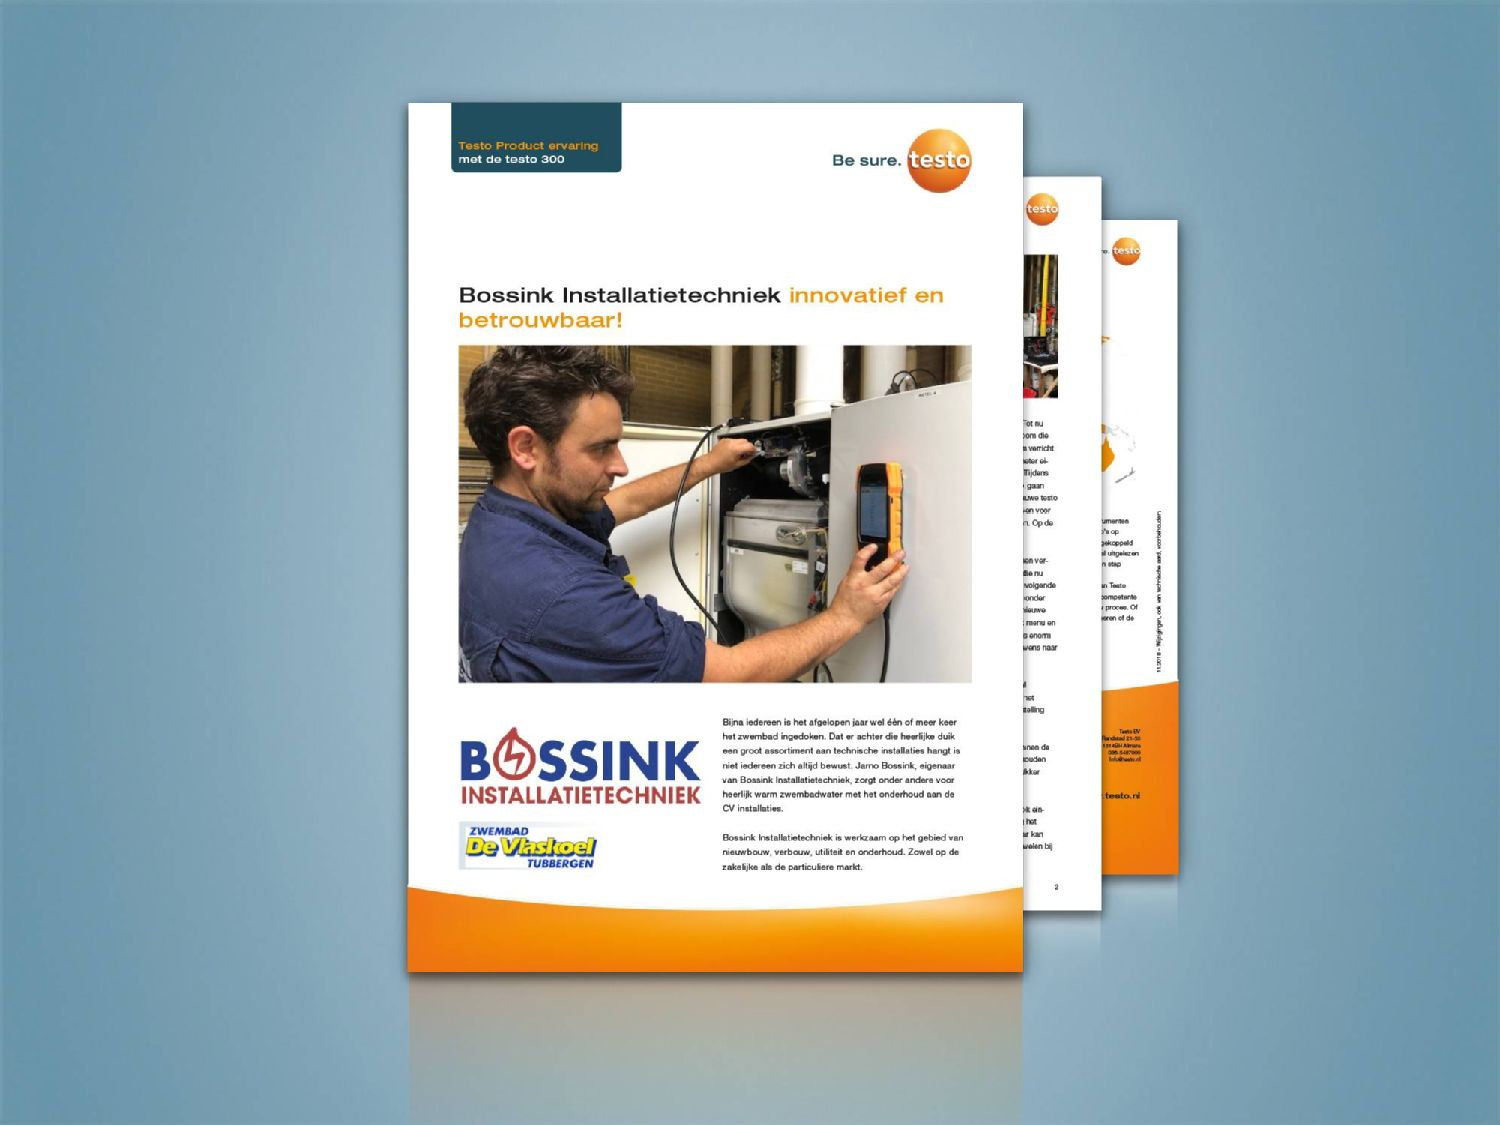 testo-300-Website-Image-producttest-bossink-2000x1500px-NL.jpg